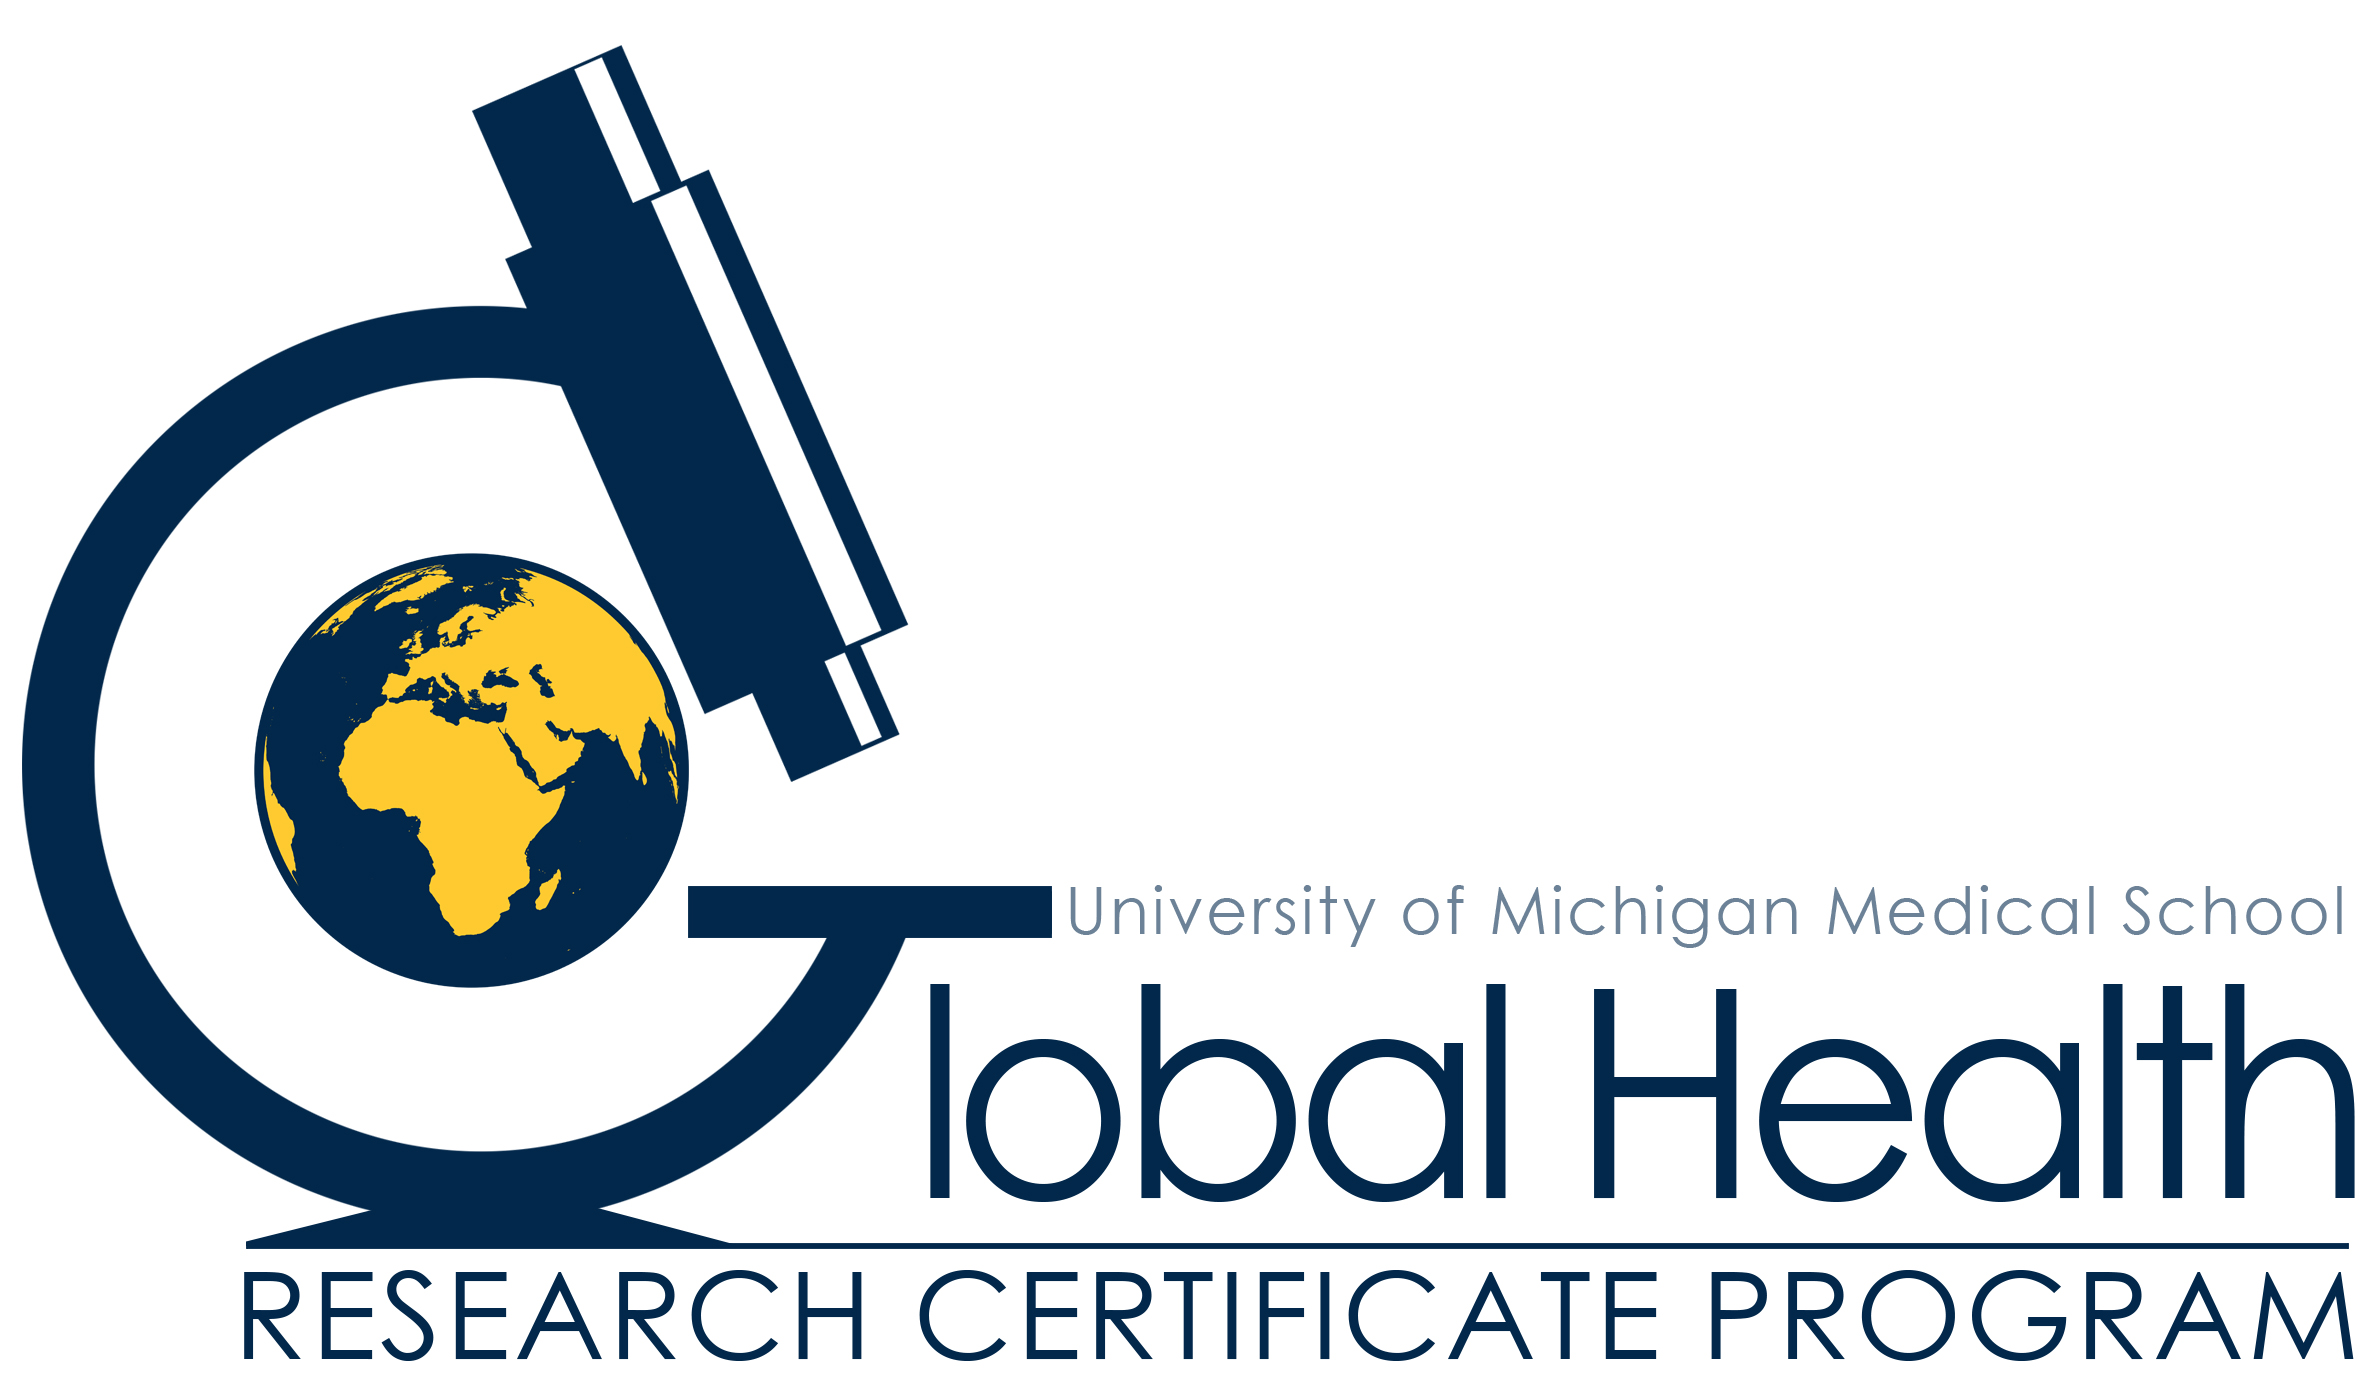 Global Health Research Program Wraps Up First Session Accepting New